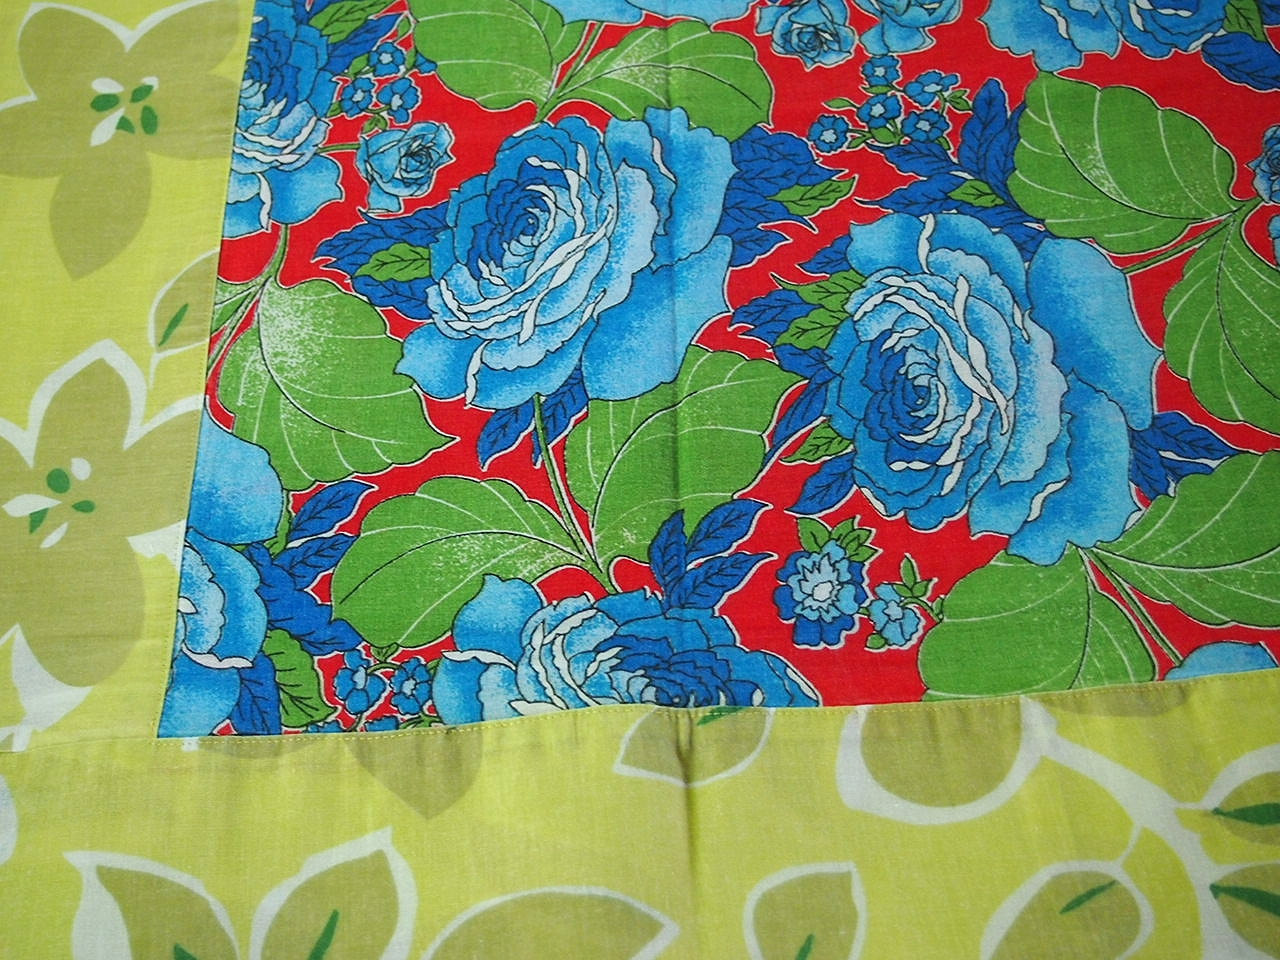 Floral Chita Tablecloth in Blue and Green - $30.00